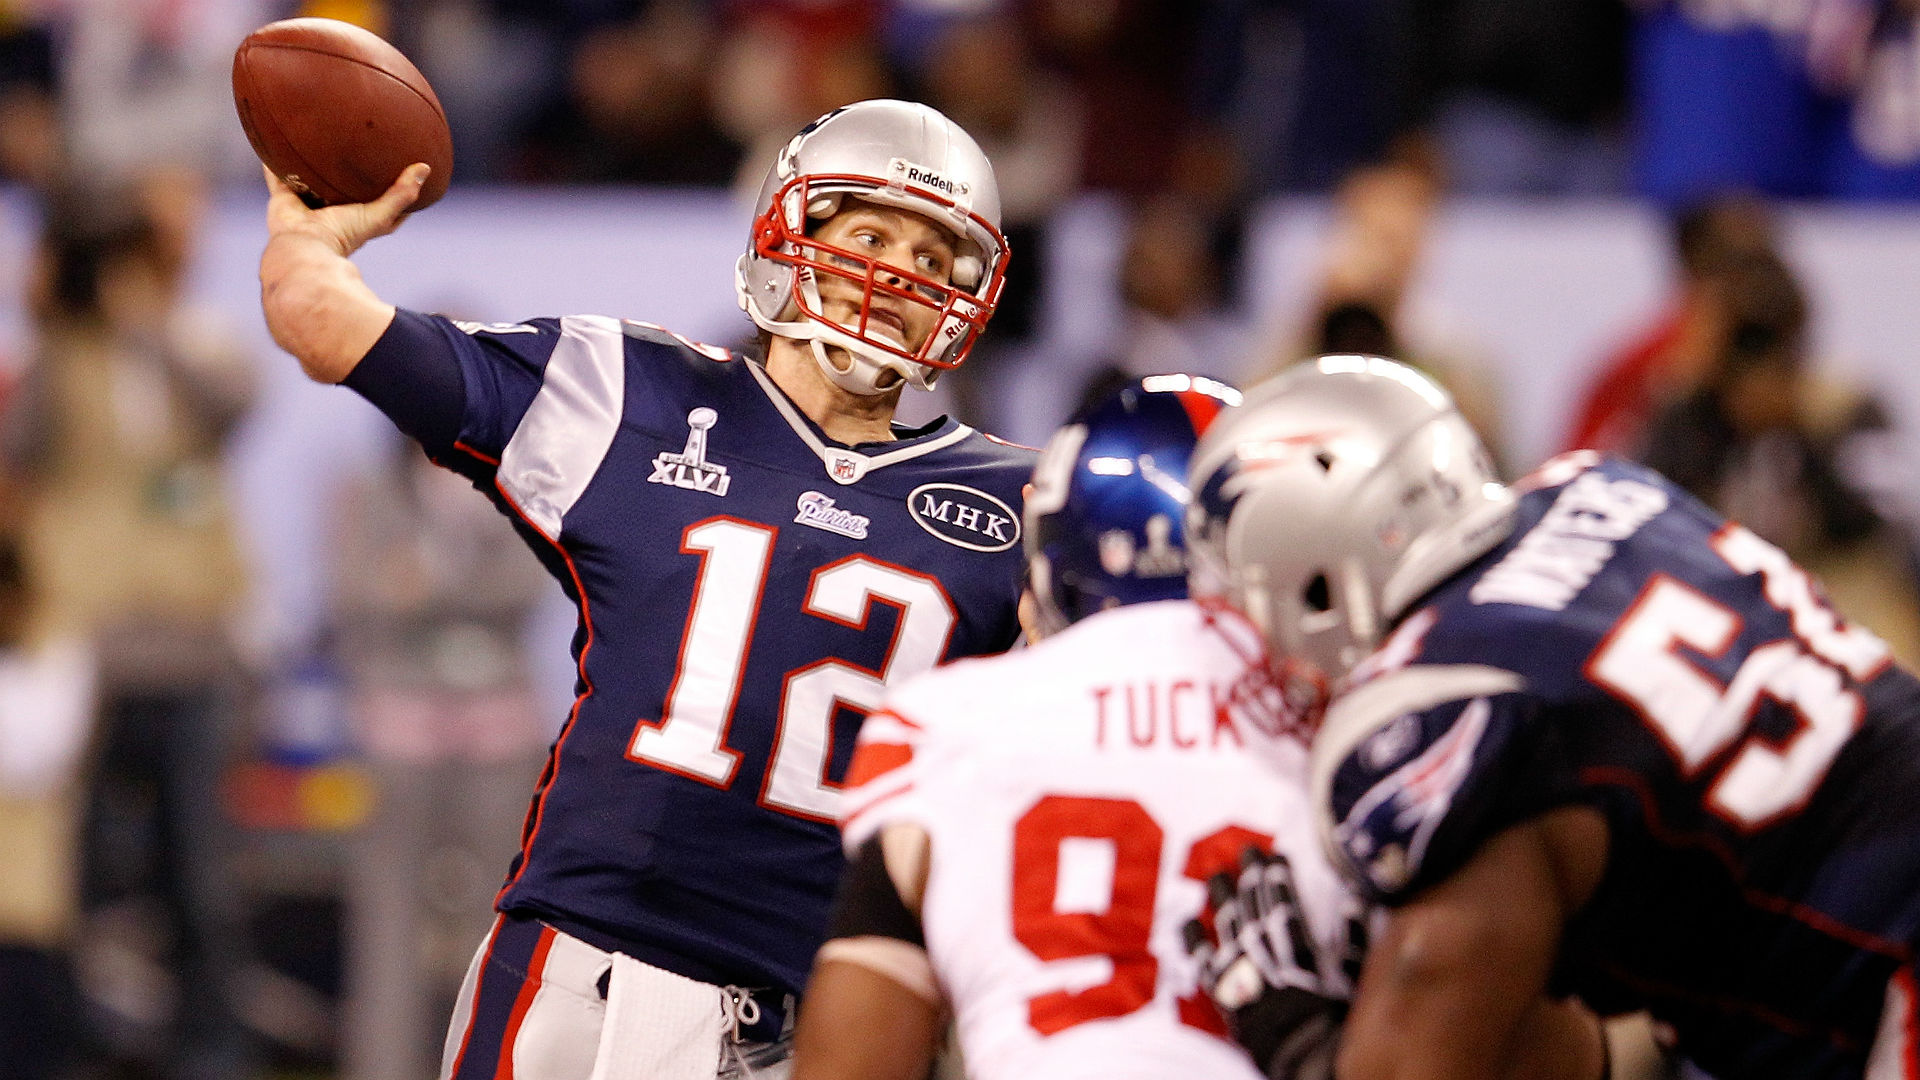 Super Bowl betting history – Recent trend toward underdogs